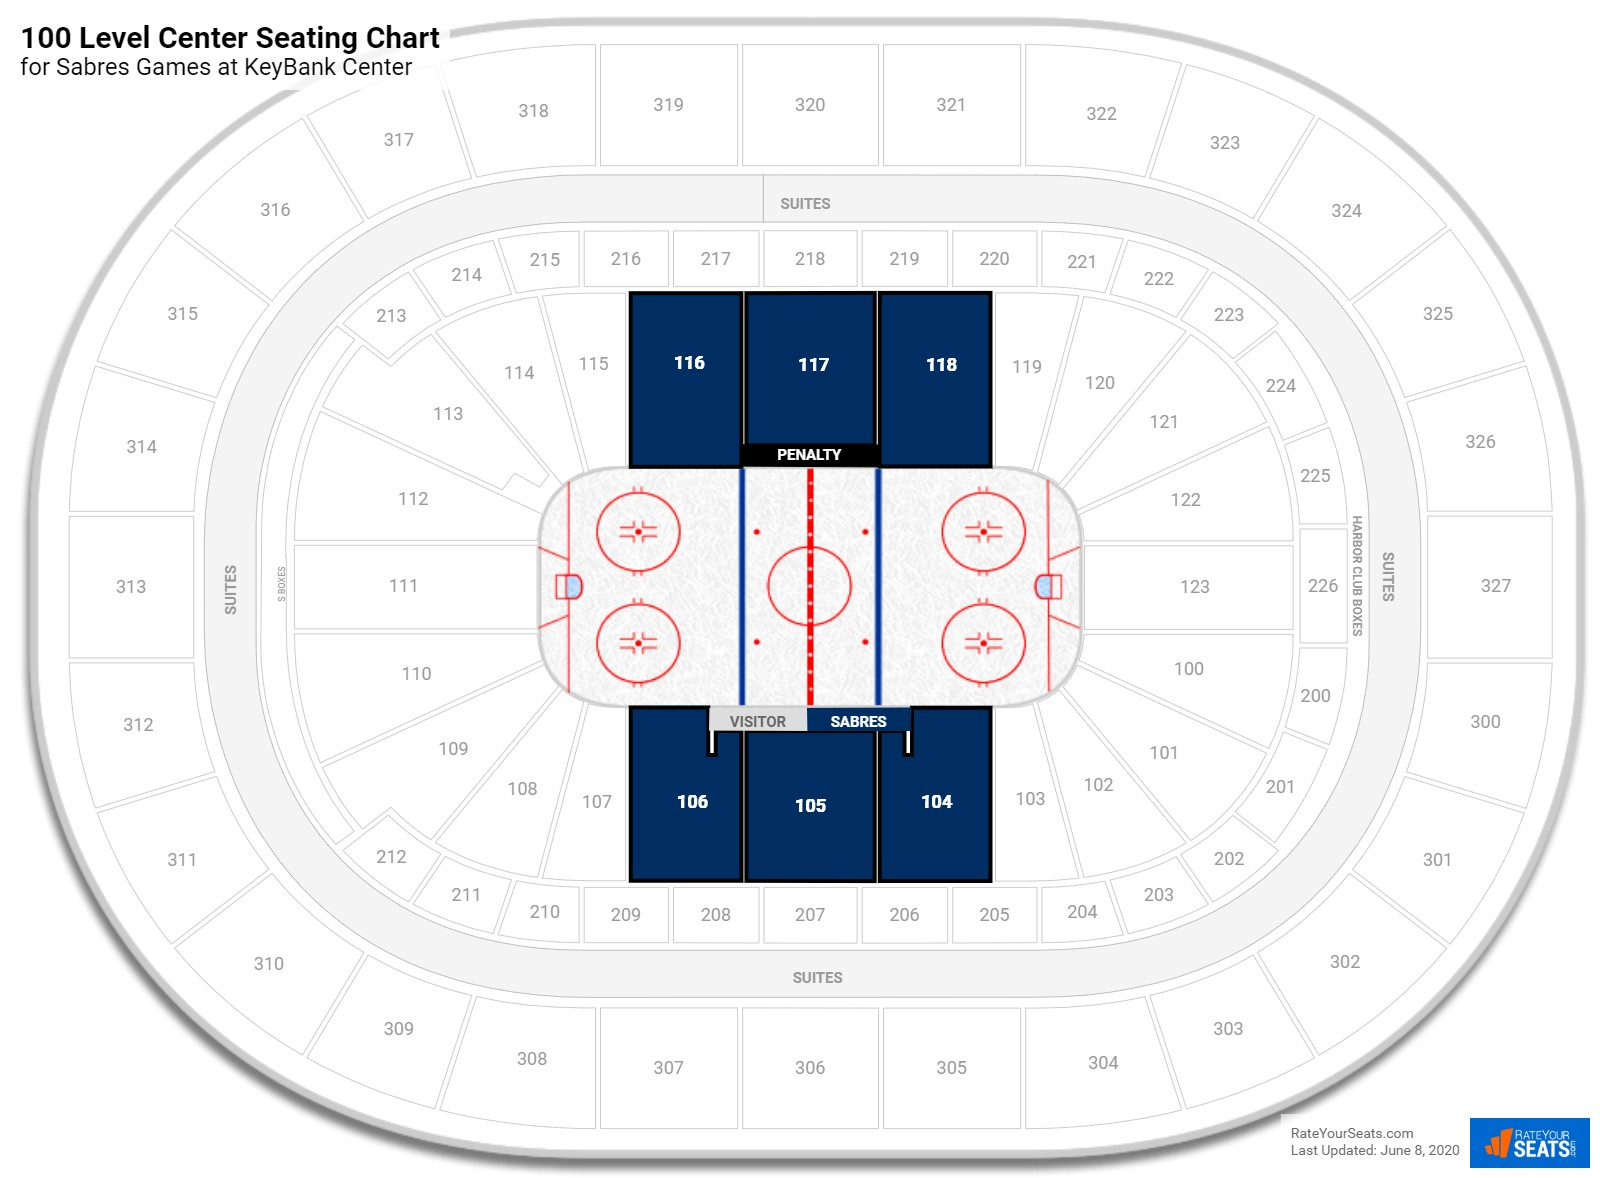 KeyBank Center 100 Level Center seating chart